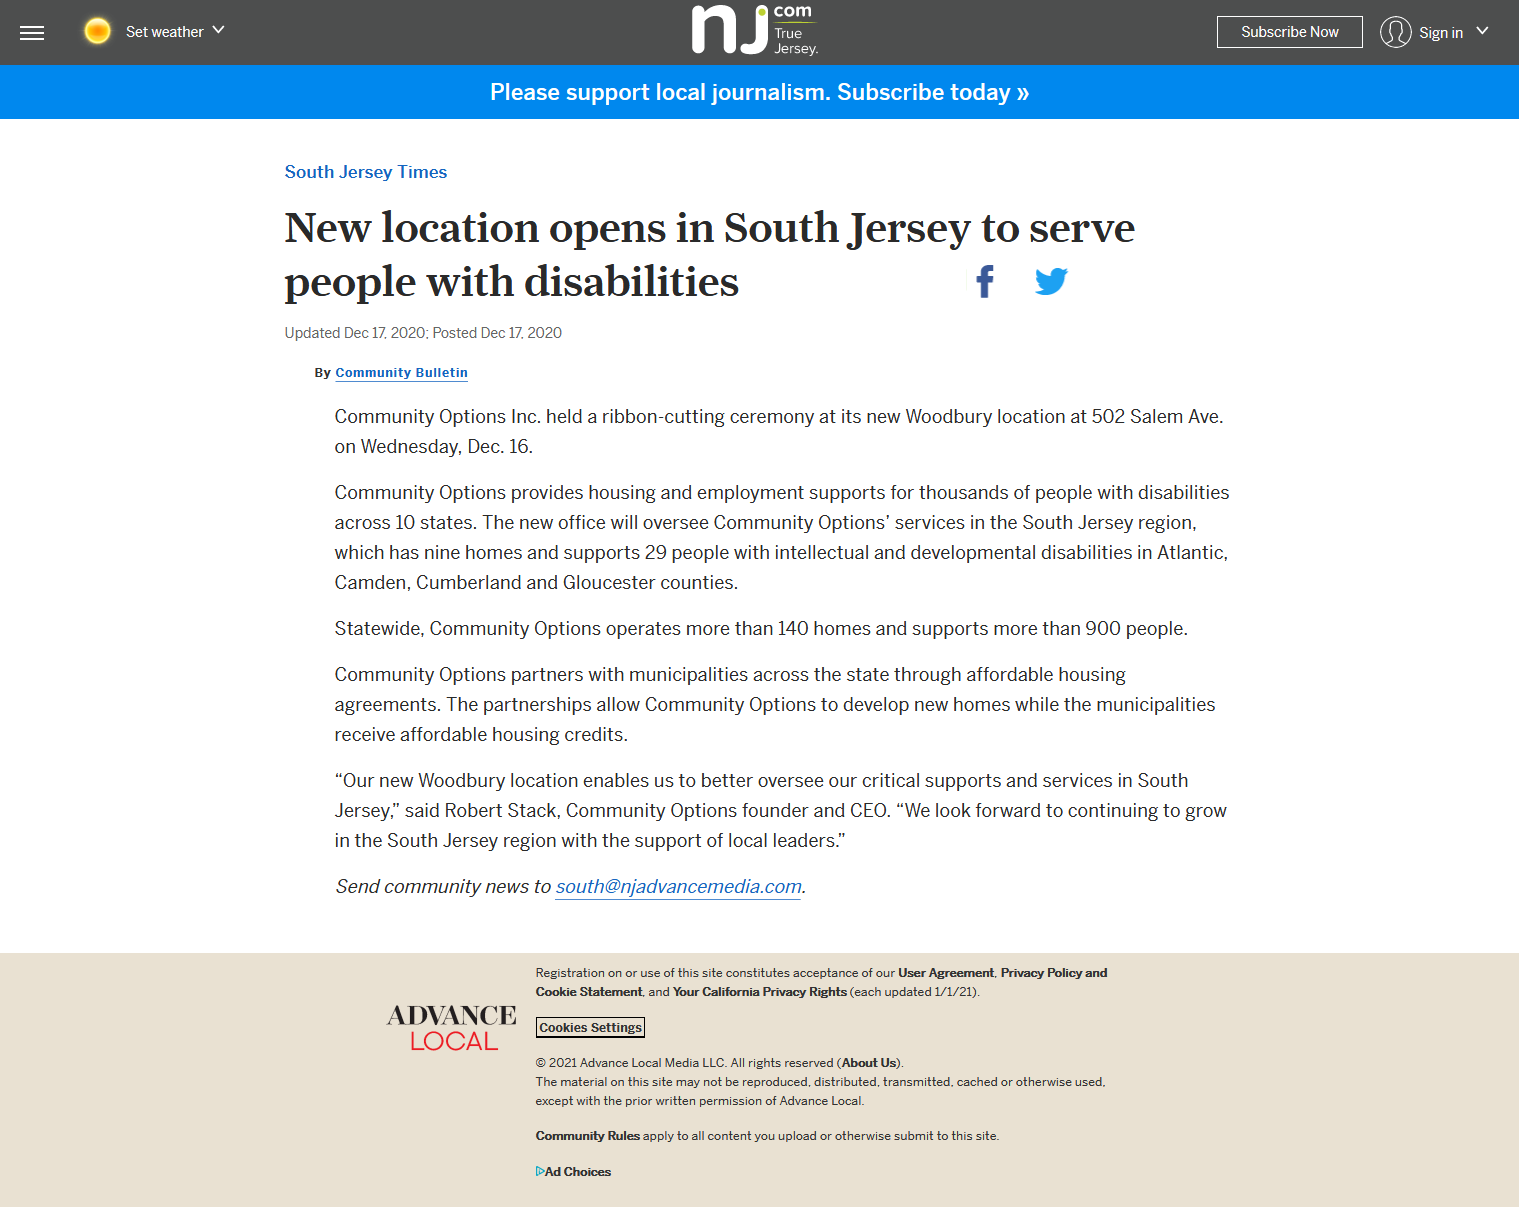 New location opens in South Jersey to serve people with disabilities